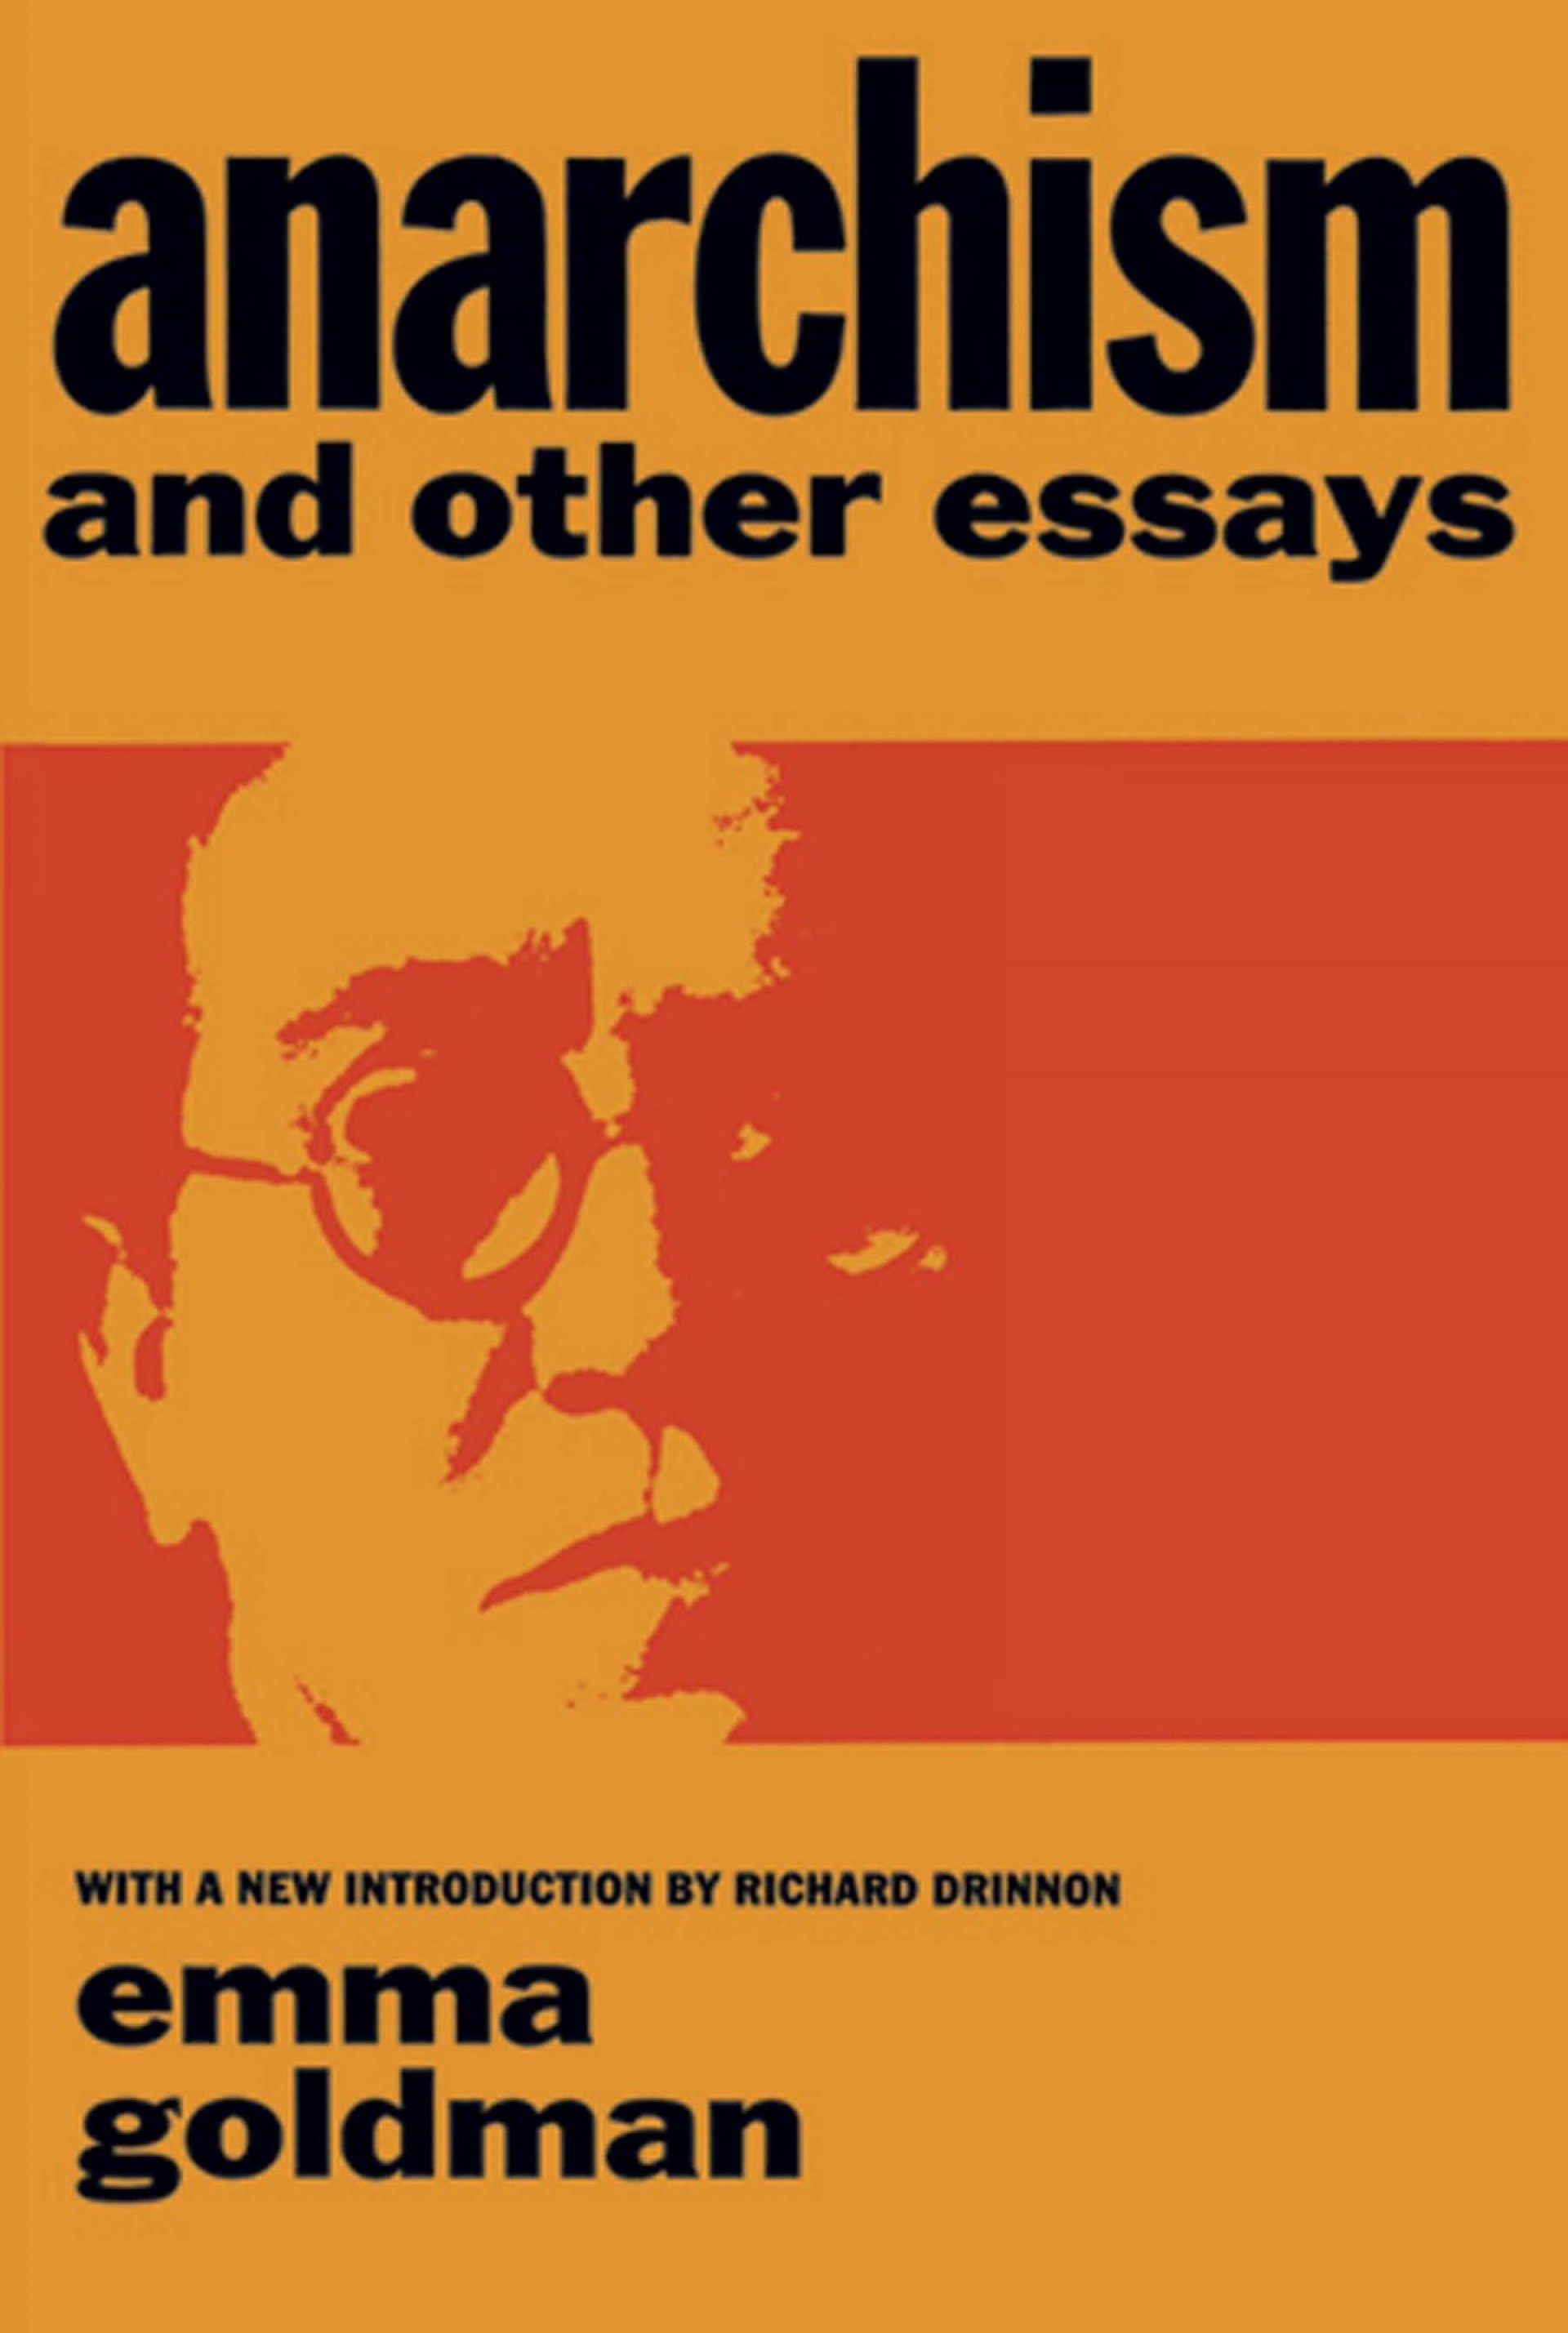 001 Essay Example Anarchism And Other Essays Incredible Emma Goldman Summary Mla Citation 1920